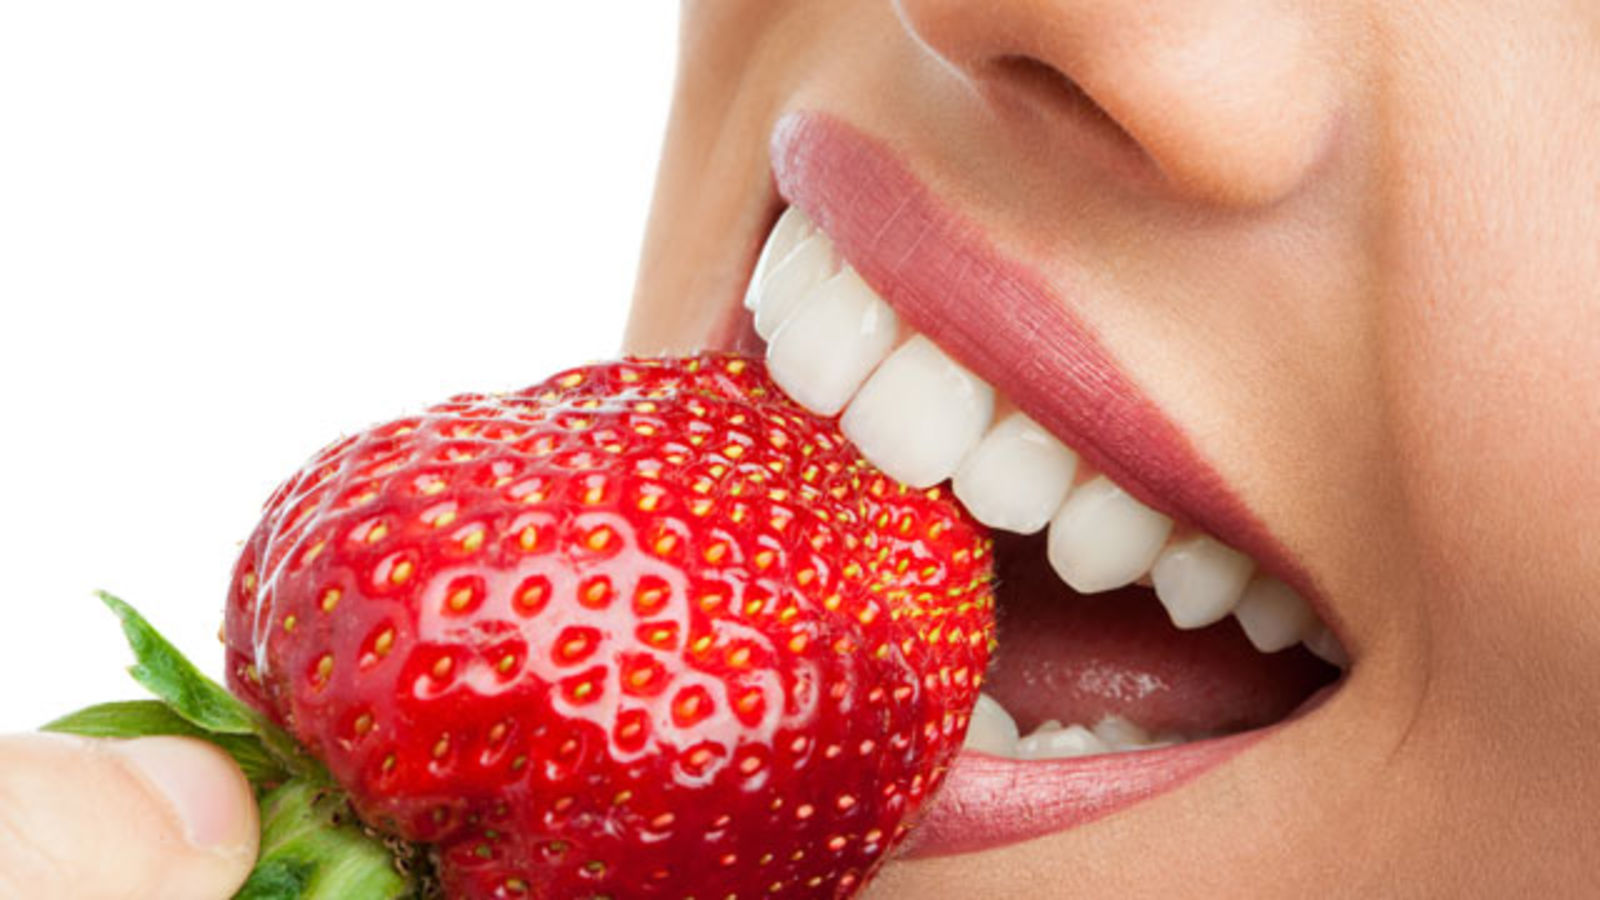 5 Foods that Can Whiten Your Teeth